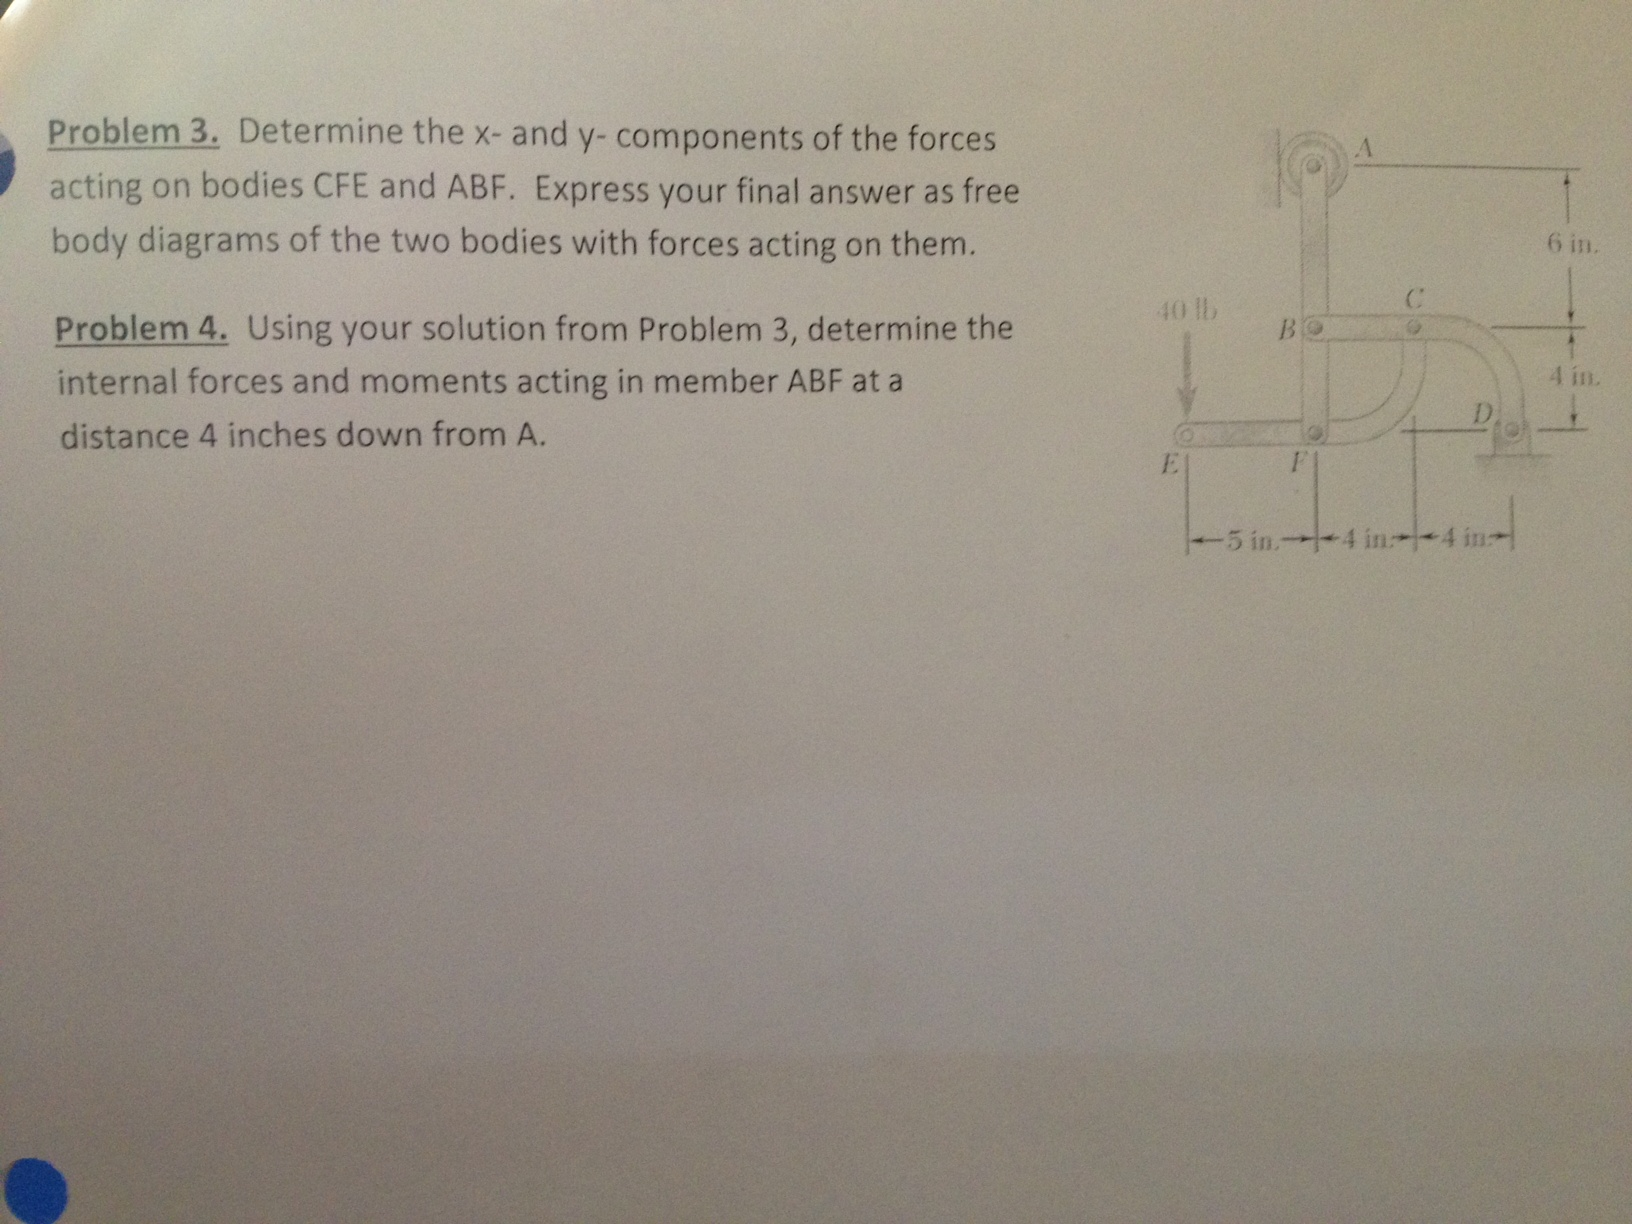 Determine the x- and y- components of the forces a